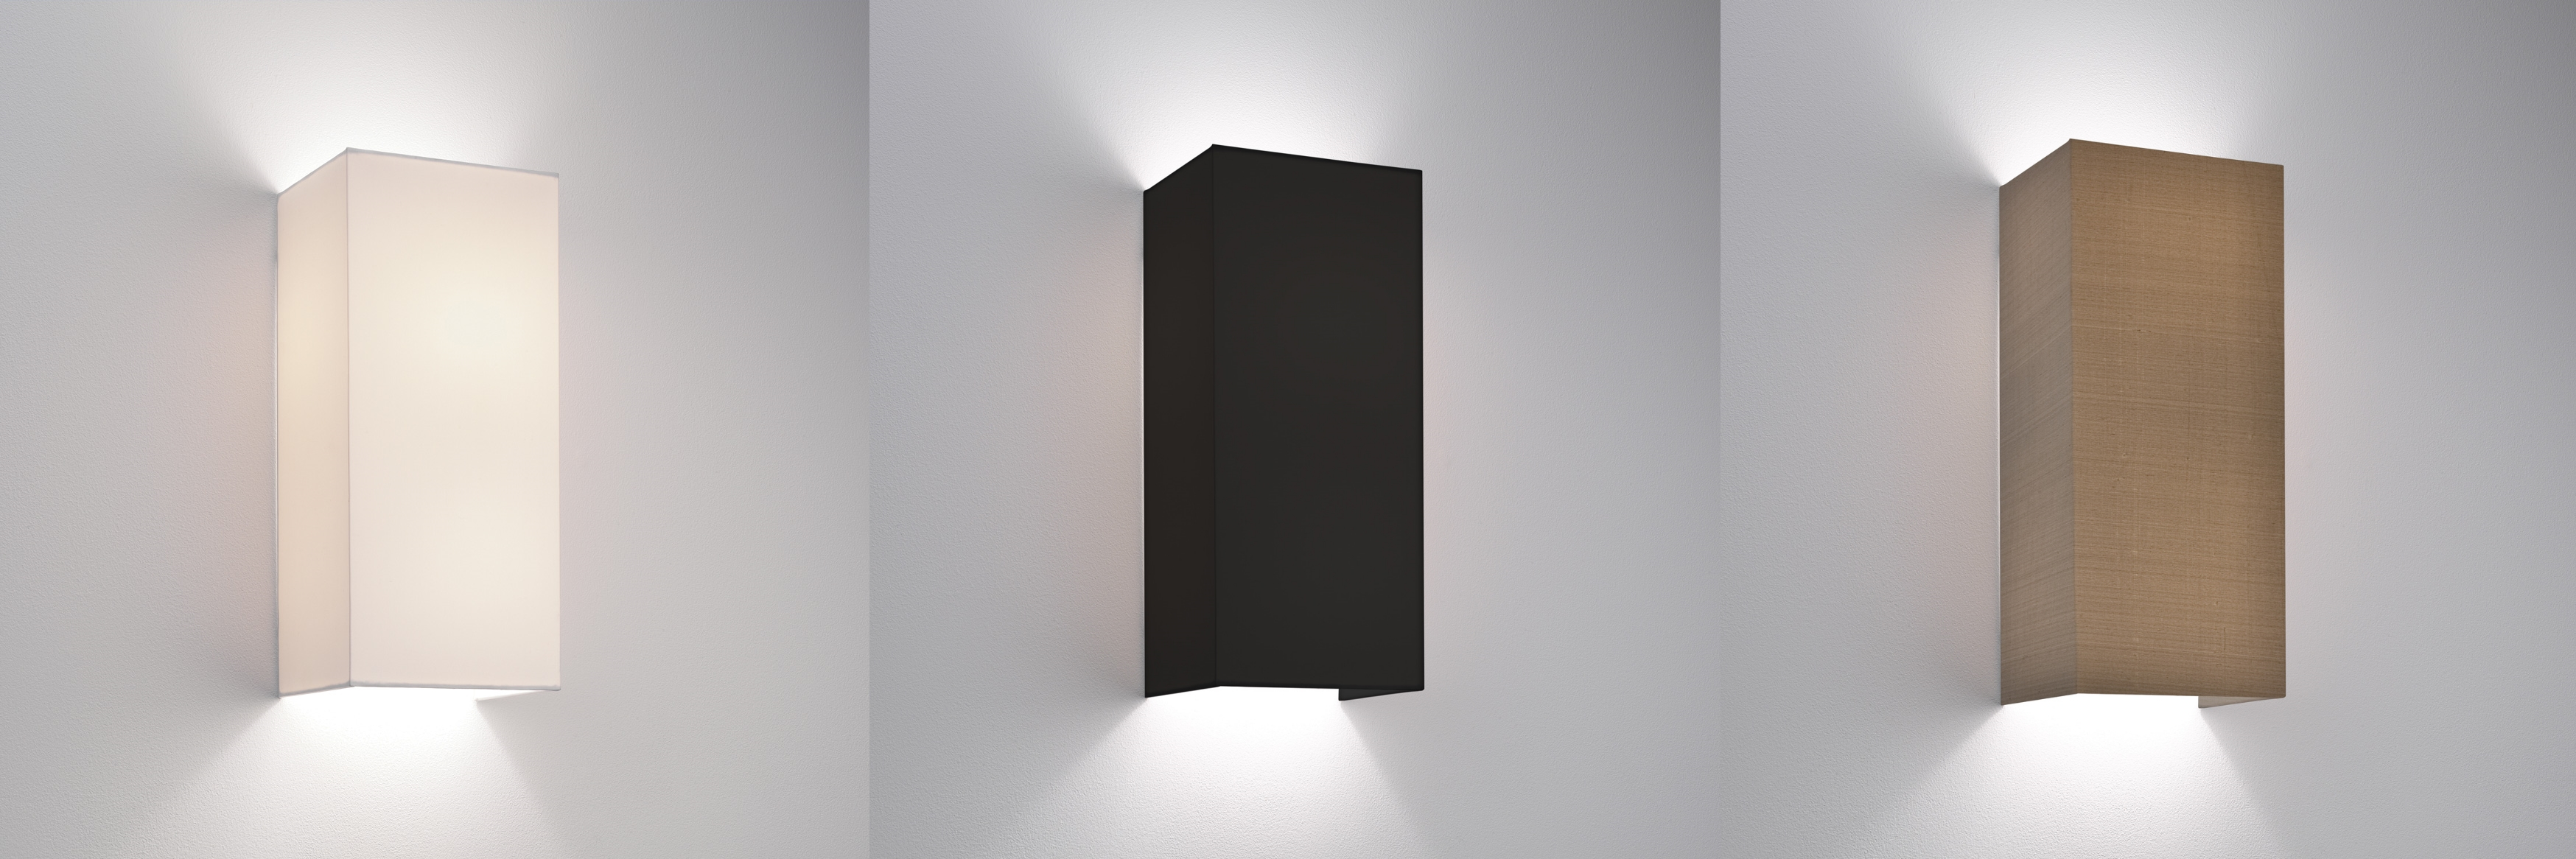 Astro Chuo 380 fabric wall light shade 2x60W E27 white black oyster eBay